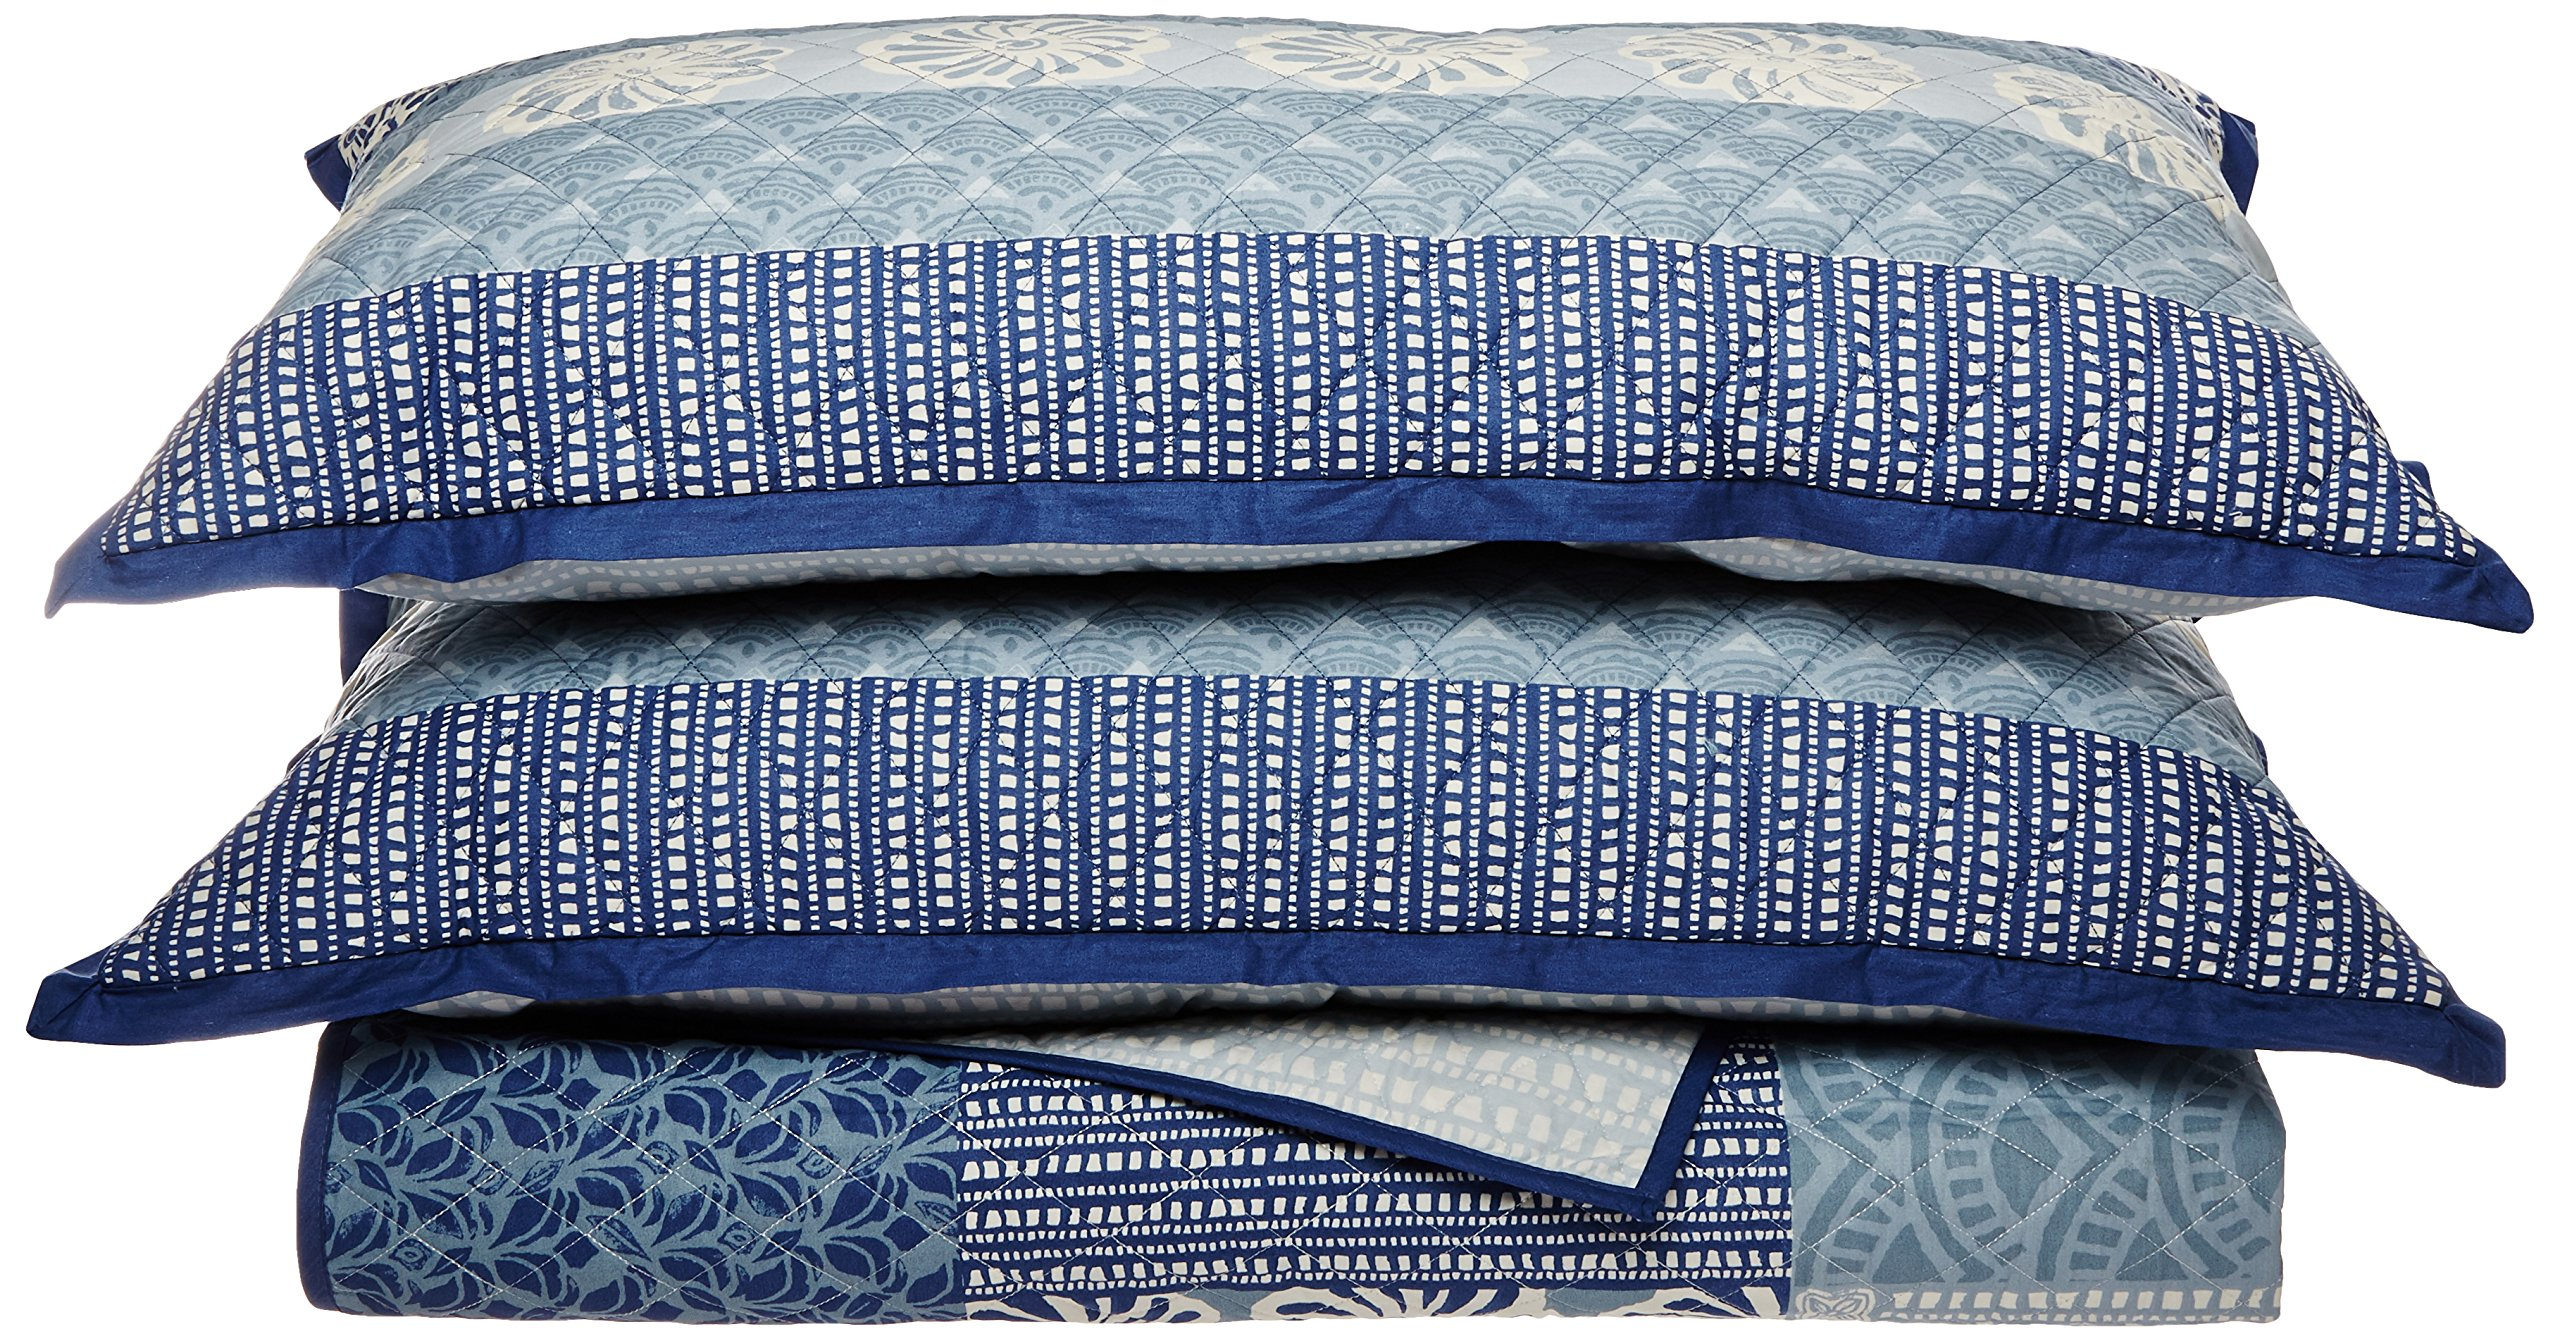 KD Spain Horizon Quilt Sham Set, Blue, King by KD Spain